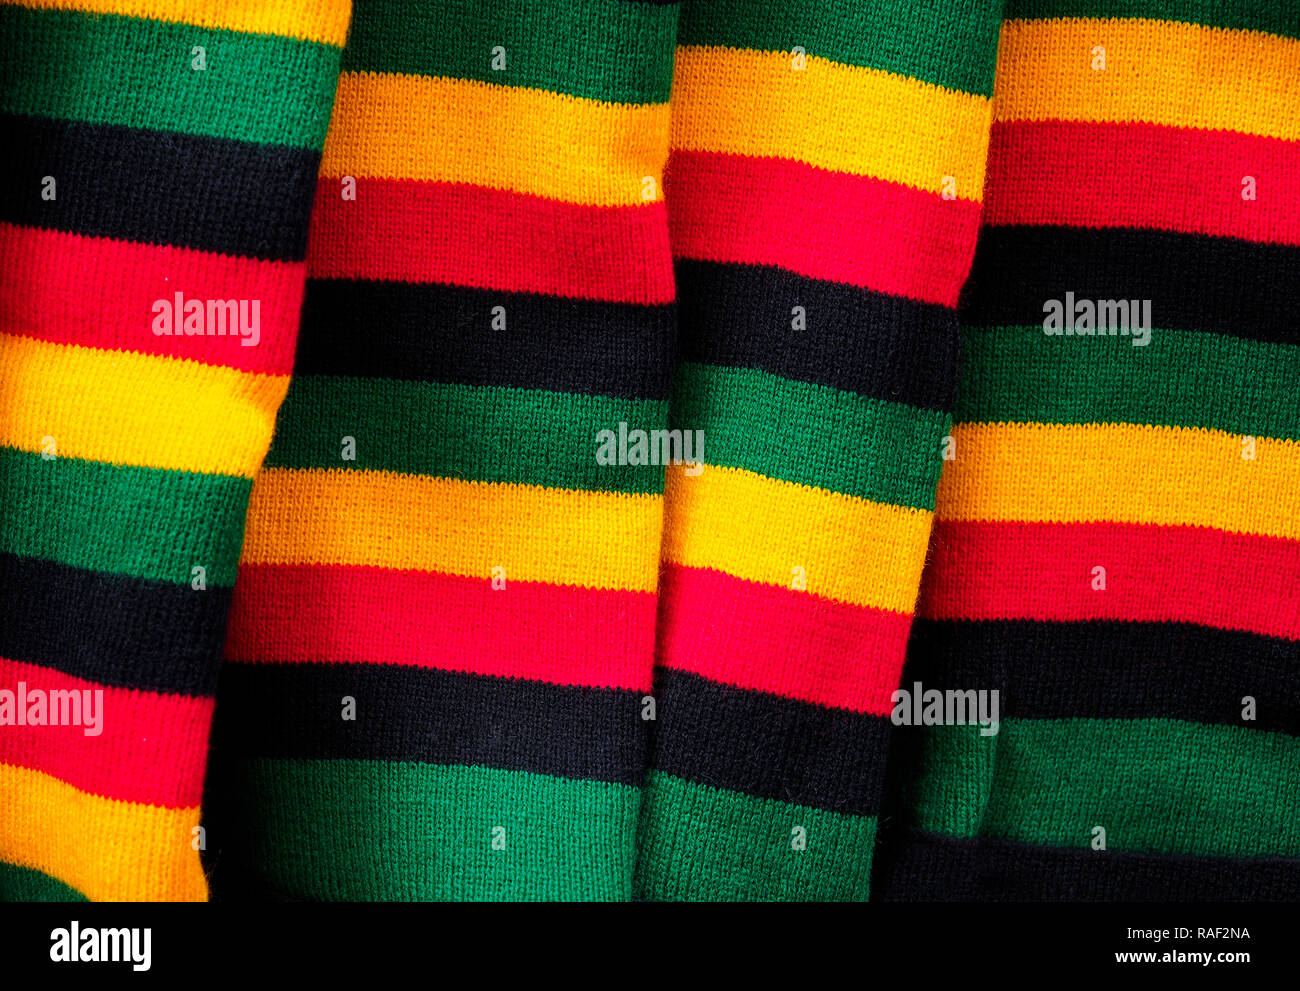 Colored background made of some wool socks on sale in a street market - Stock Image